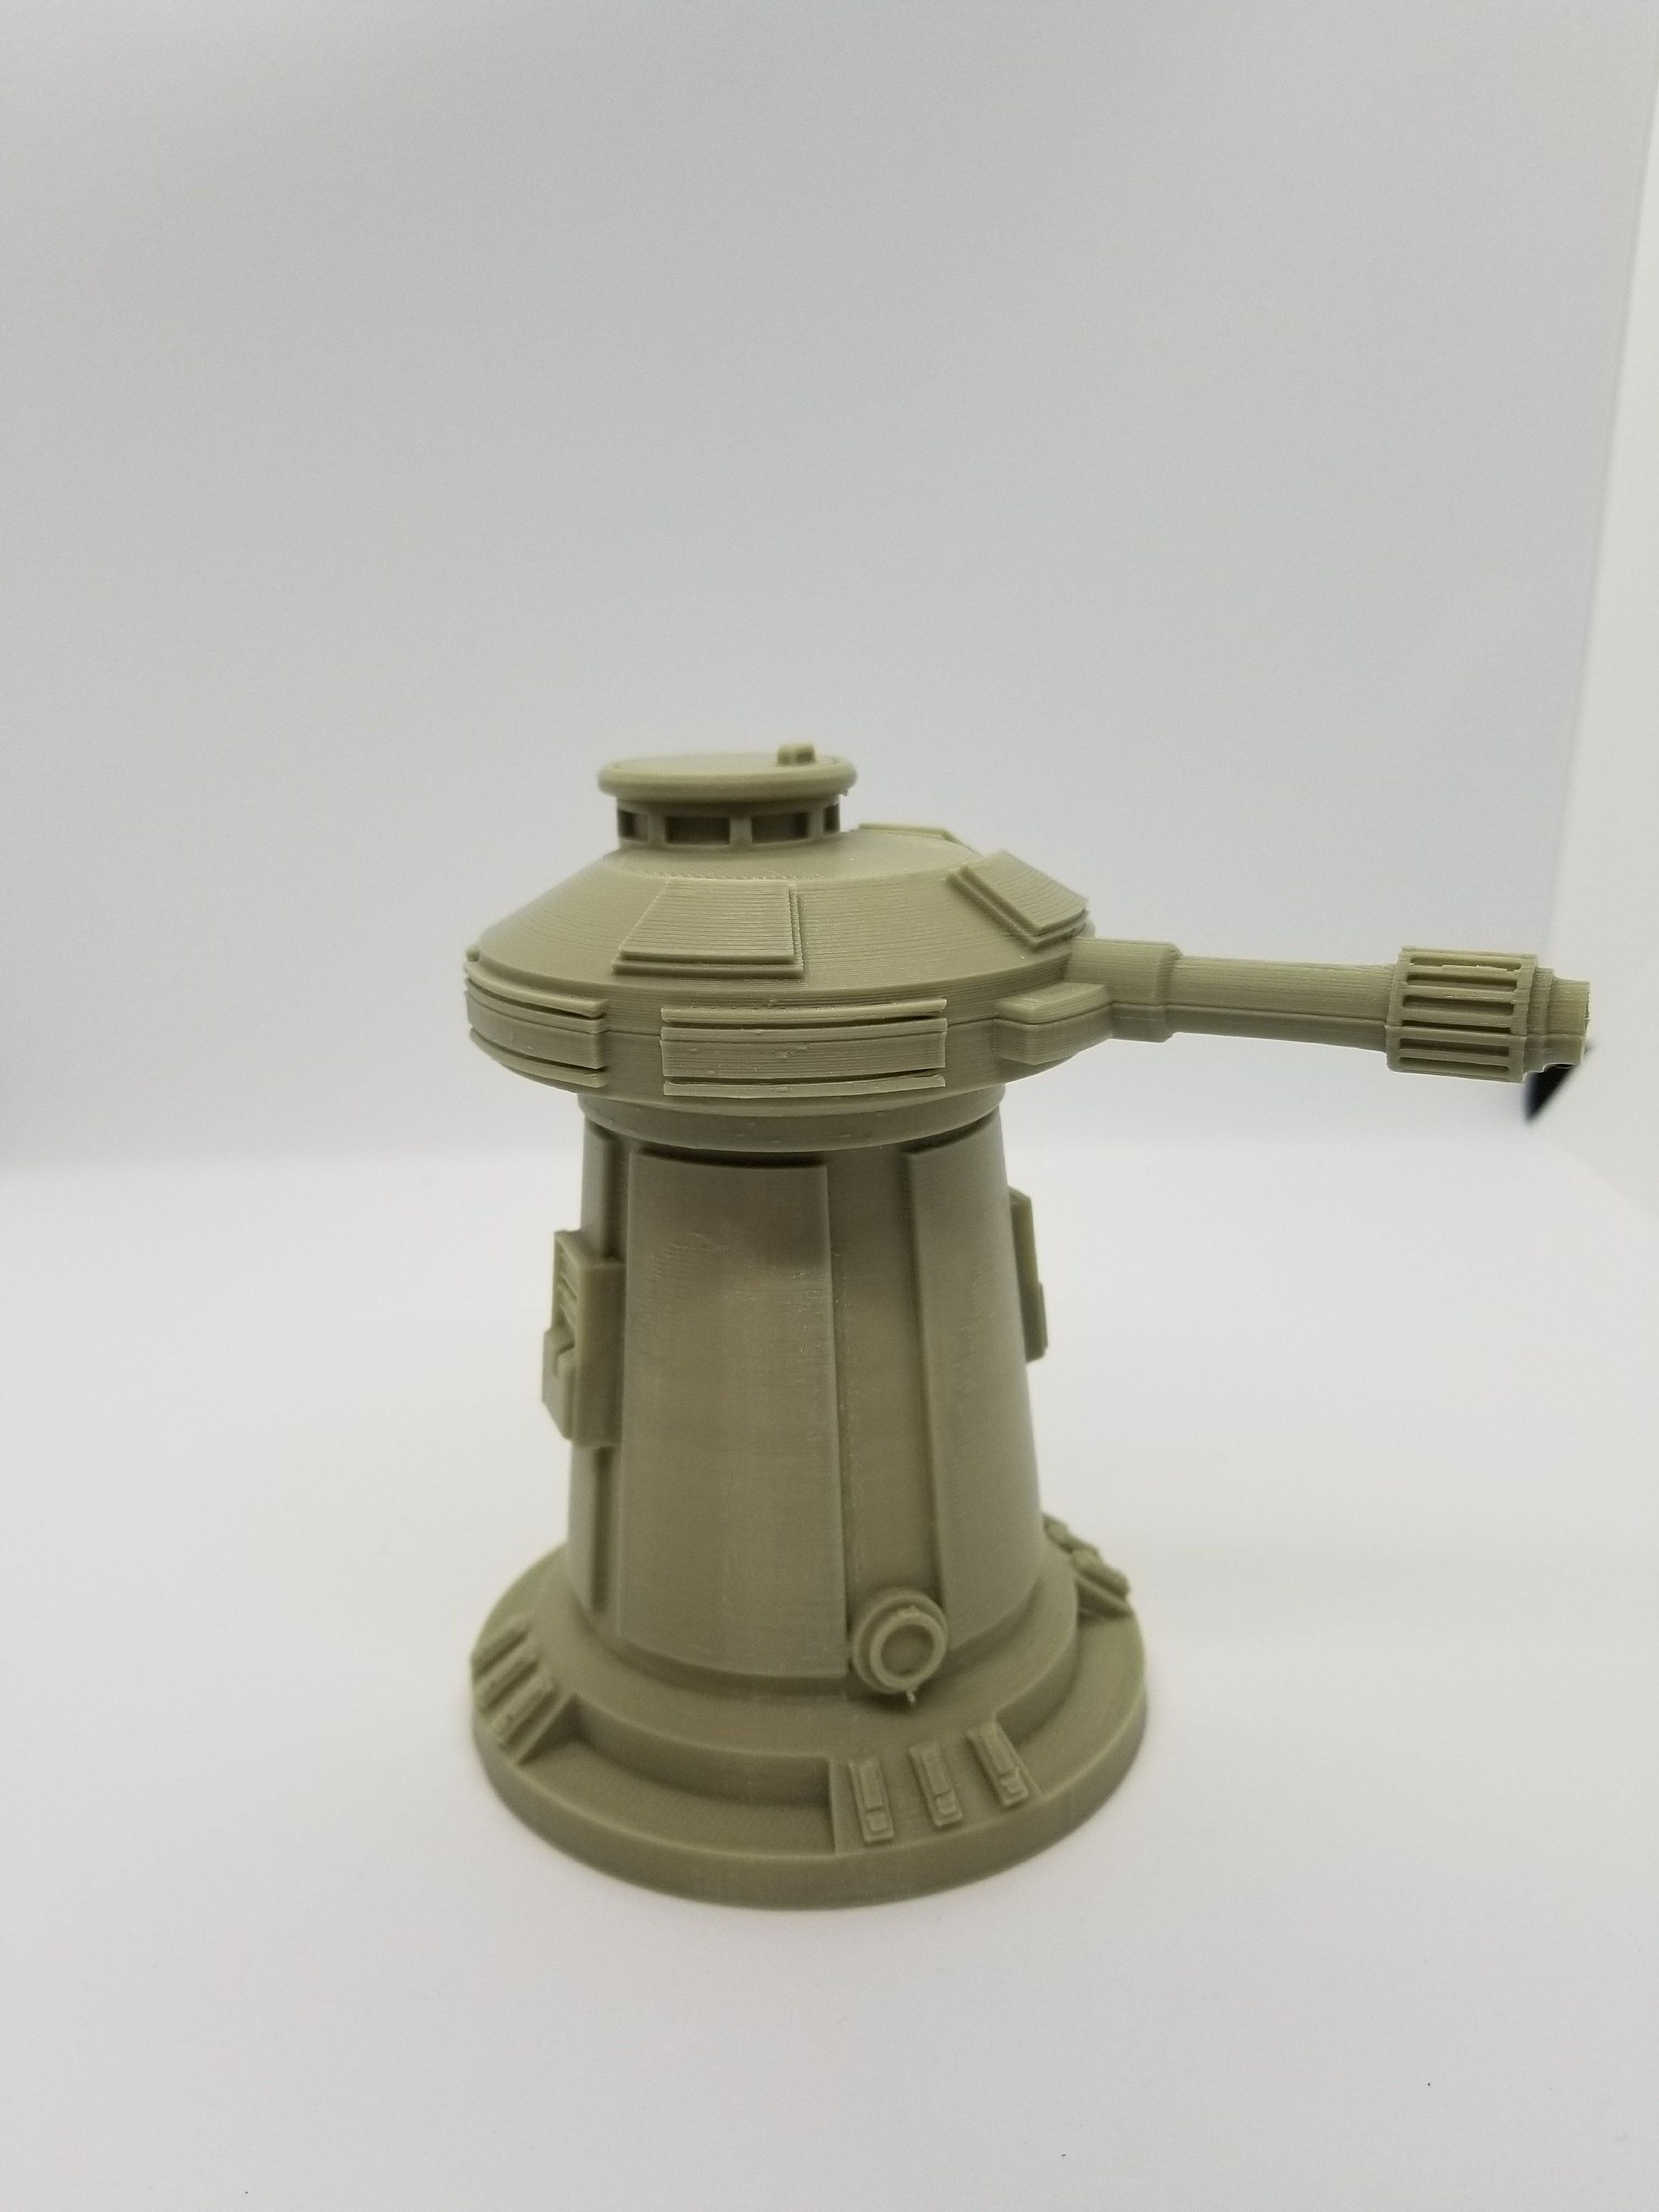 3d Printed Star Wars Legion Compatible Turret / 28mm Tabletop